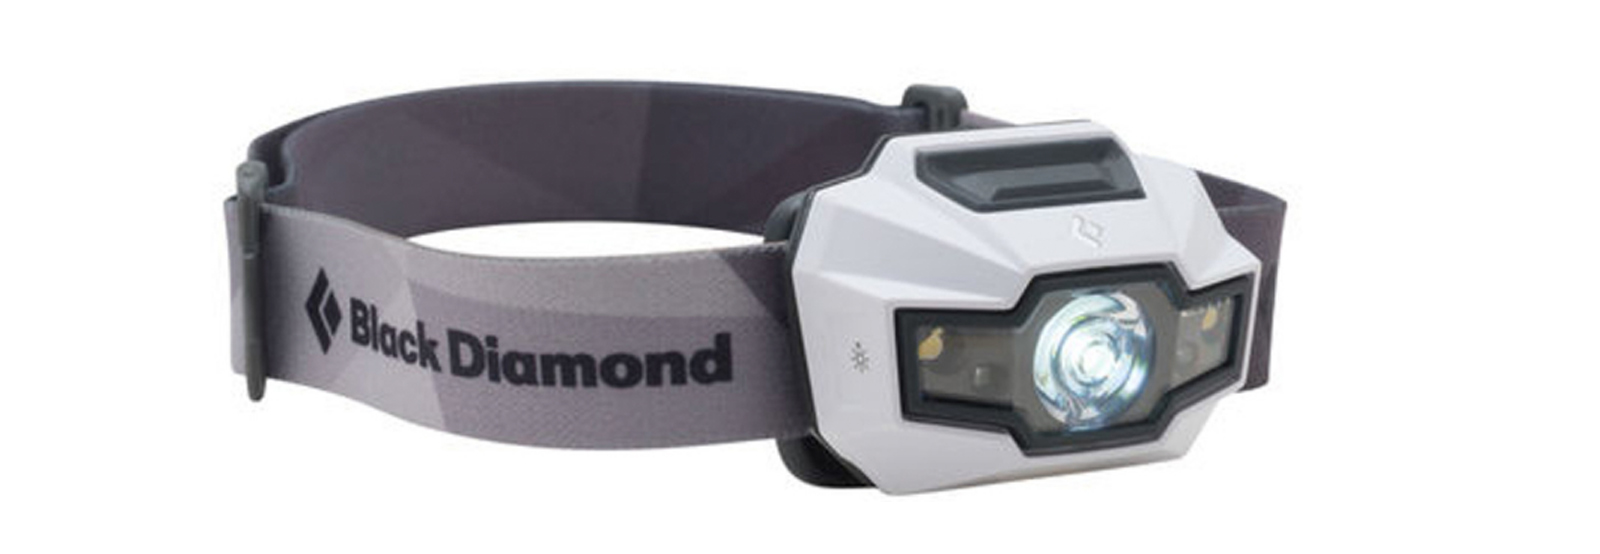 headlamp da black diamond